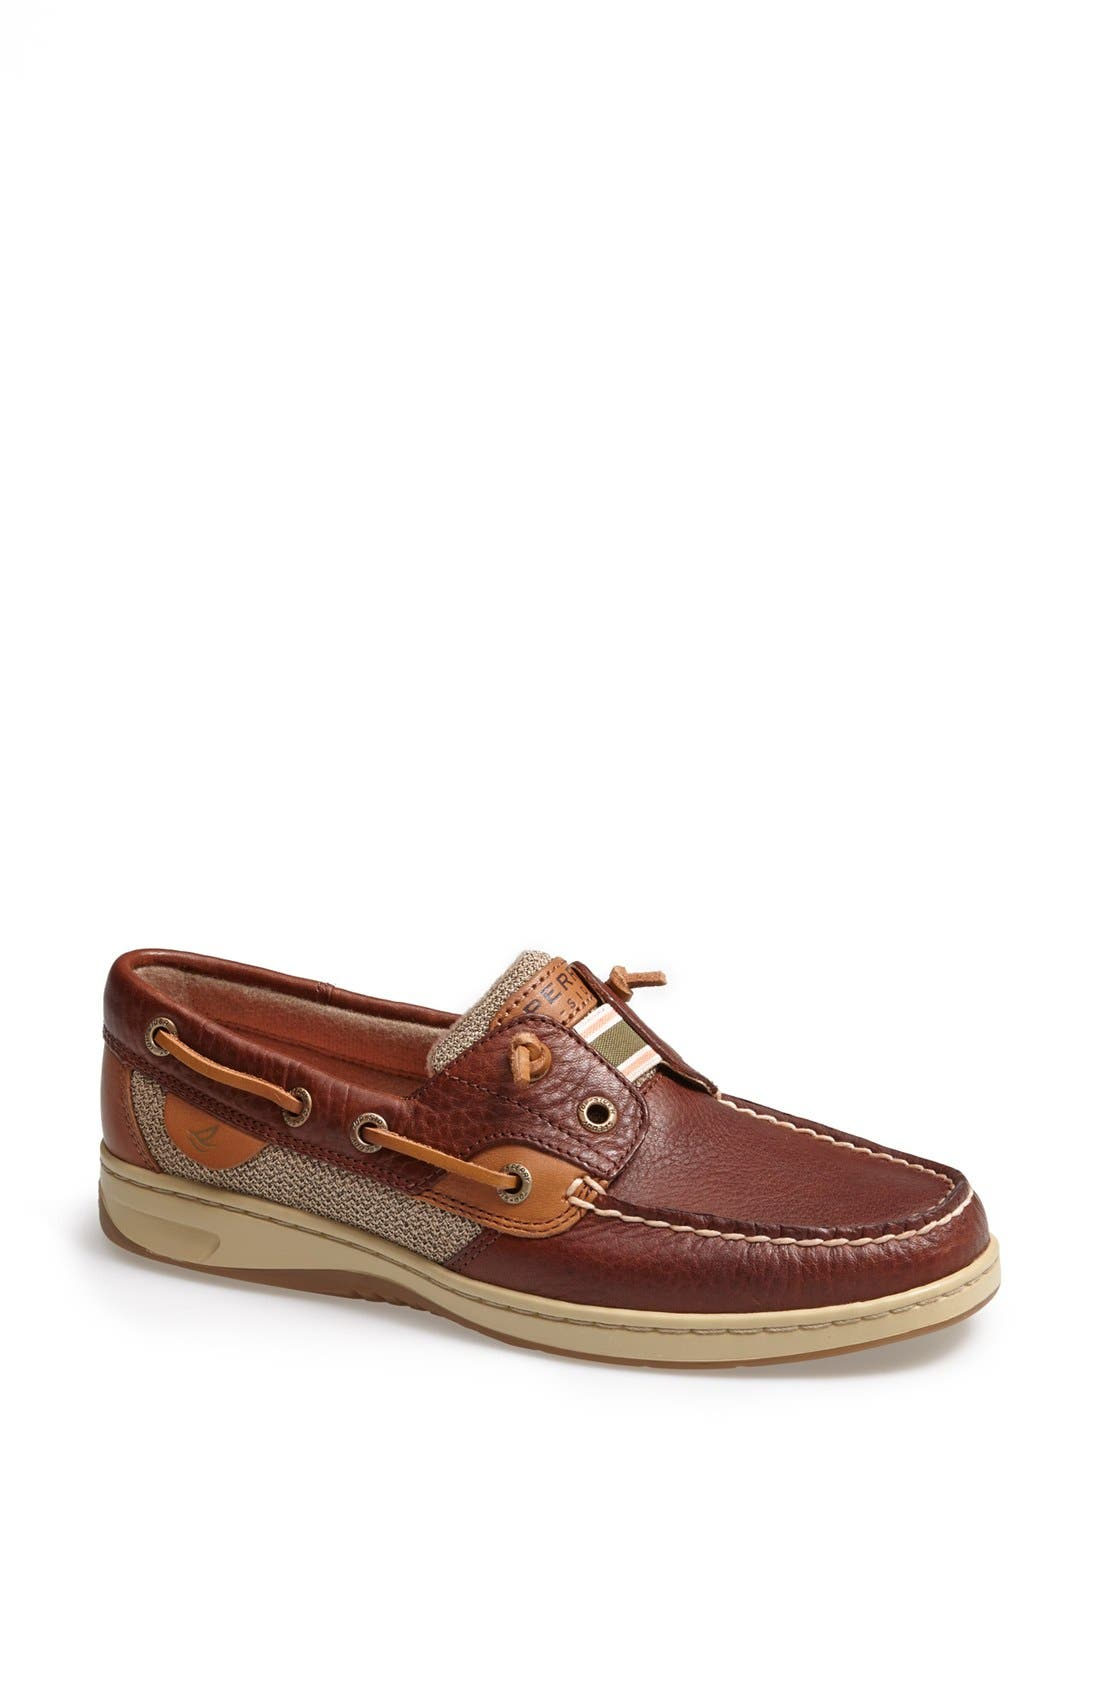 Alternate Image 1 Selected - Sperry 'Rainbowfish' Boat Shoe